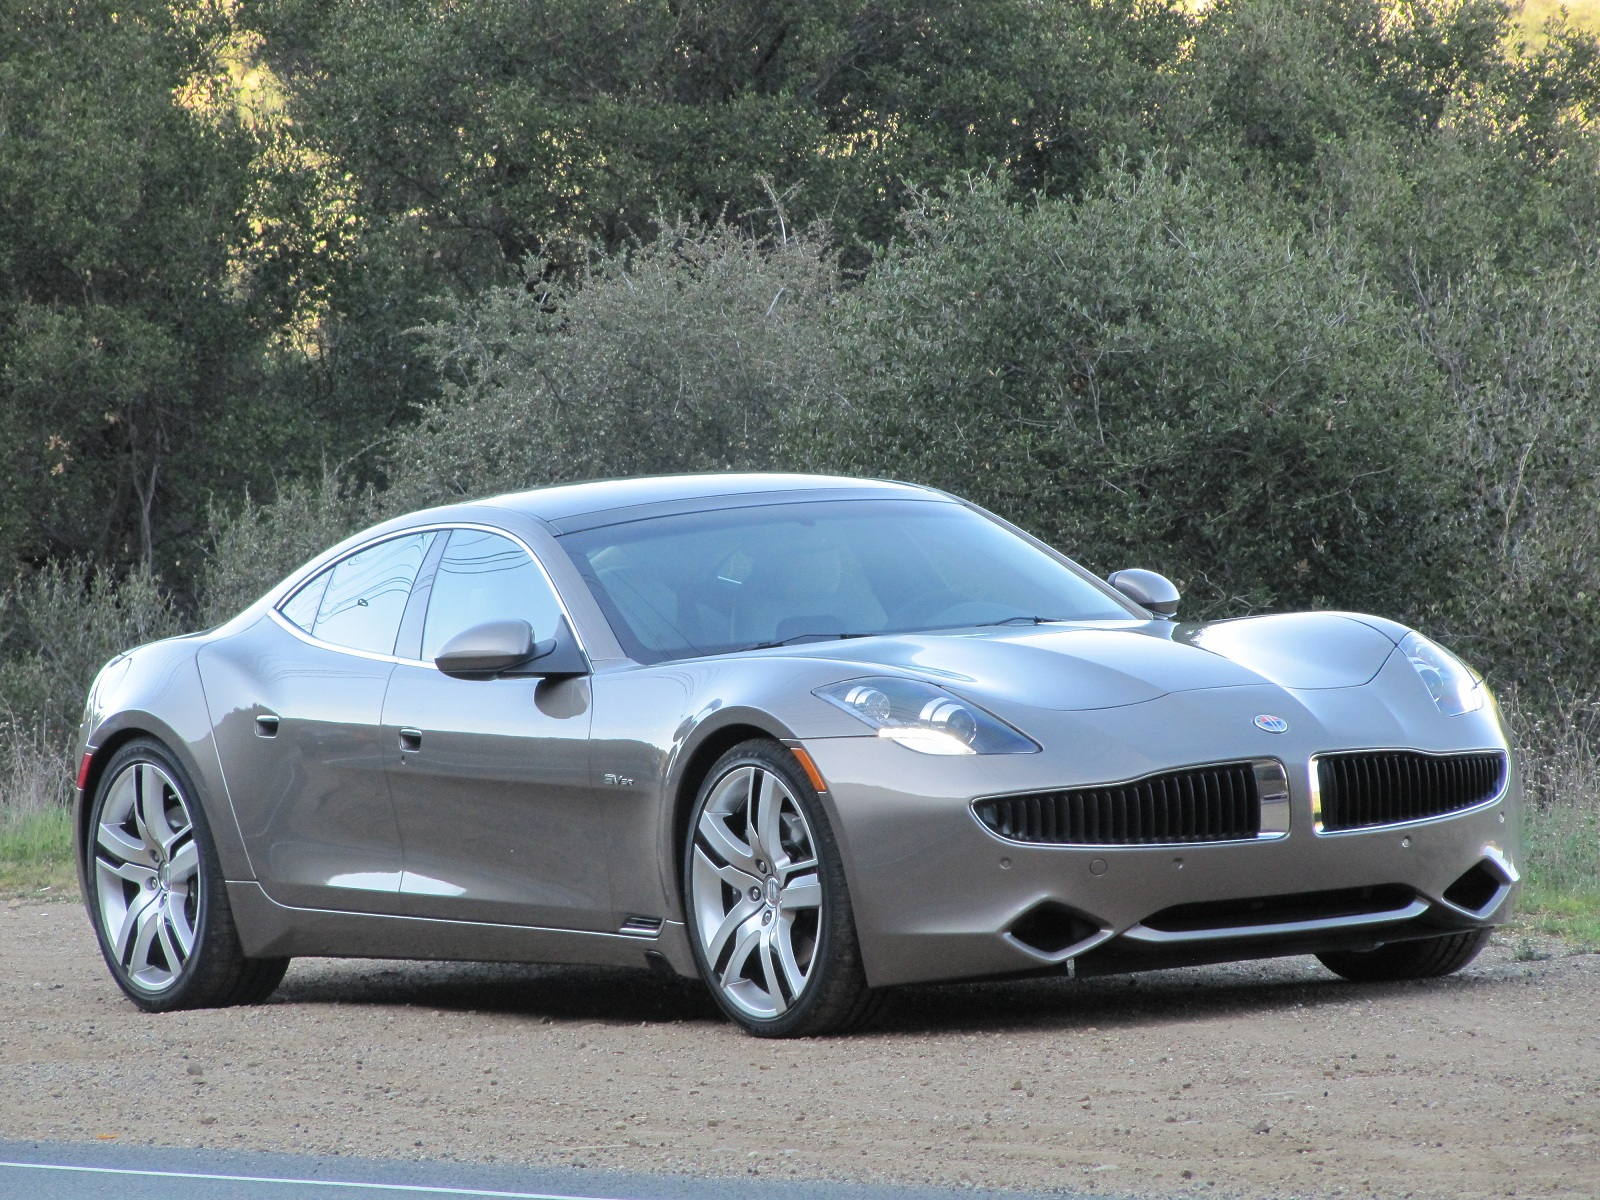 Fisker Assets Sold For $149 Million To Wanxiang, Chinese